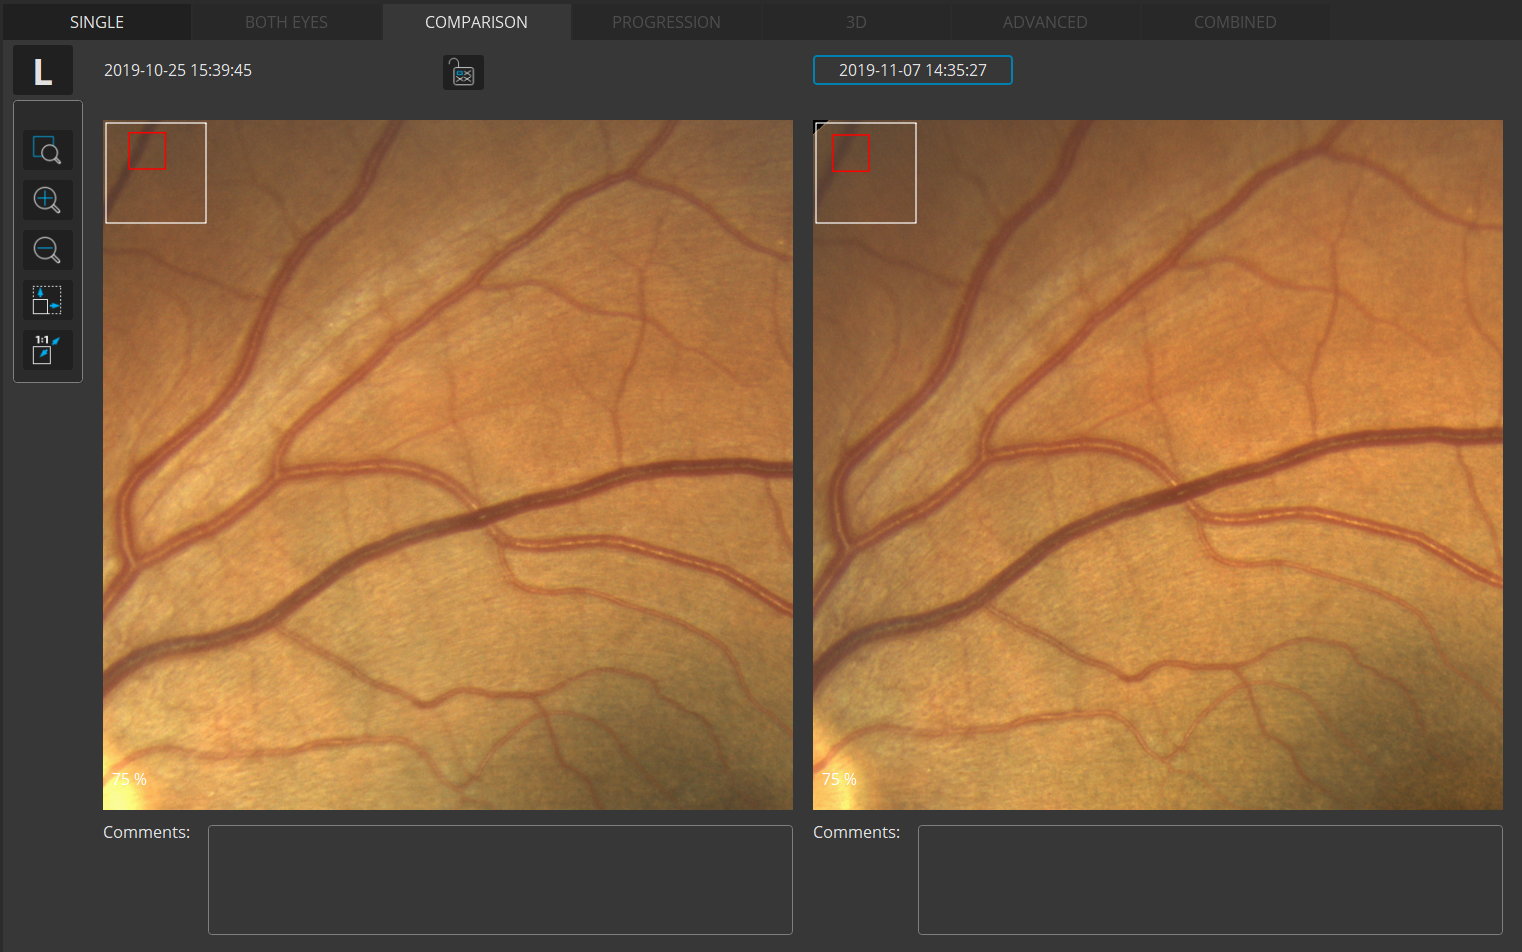 Fundus Photo Comparison view